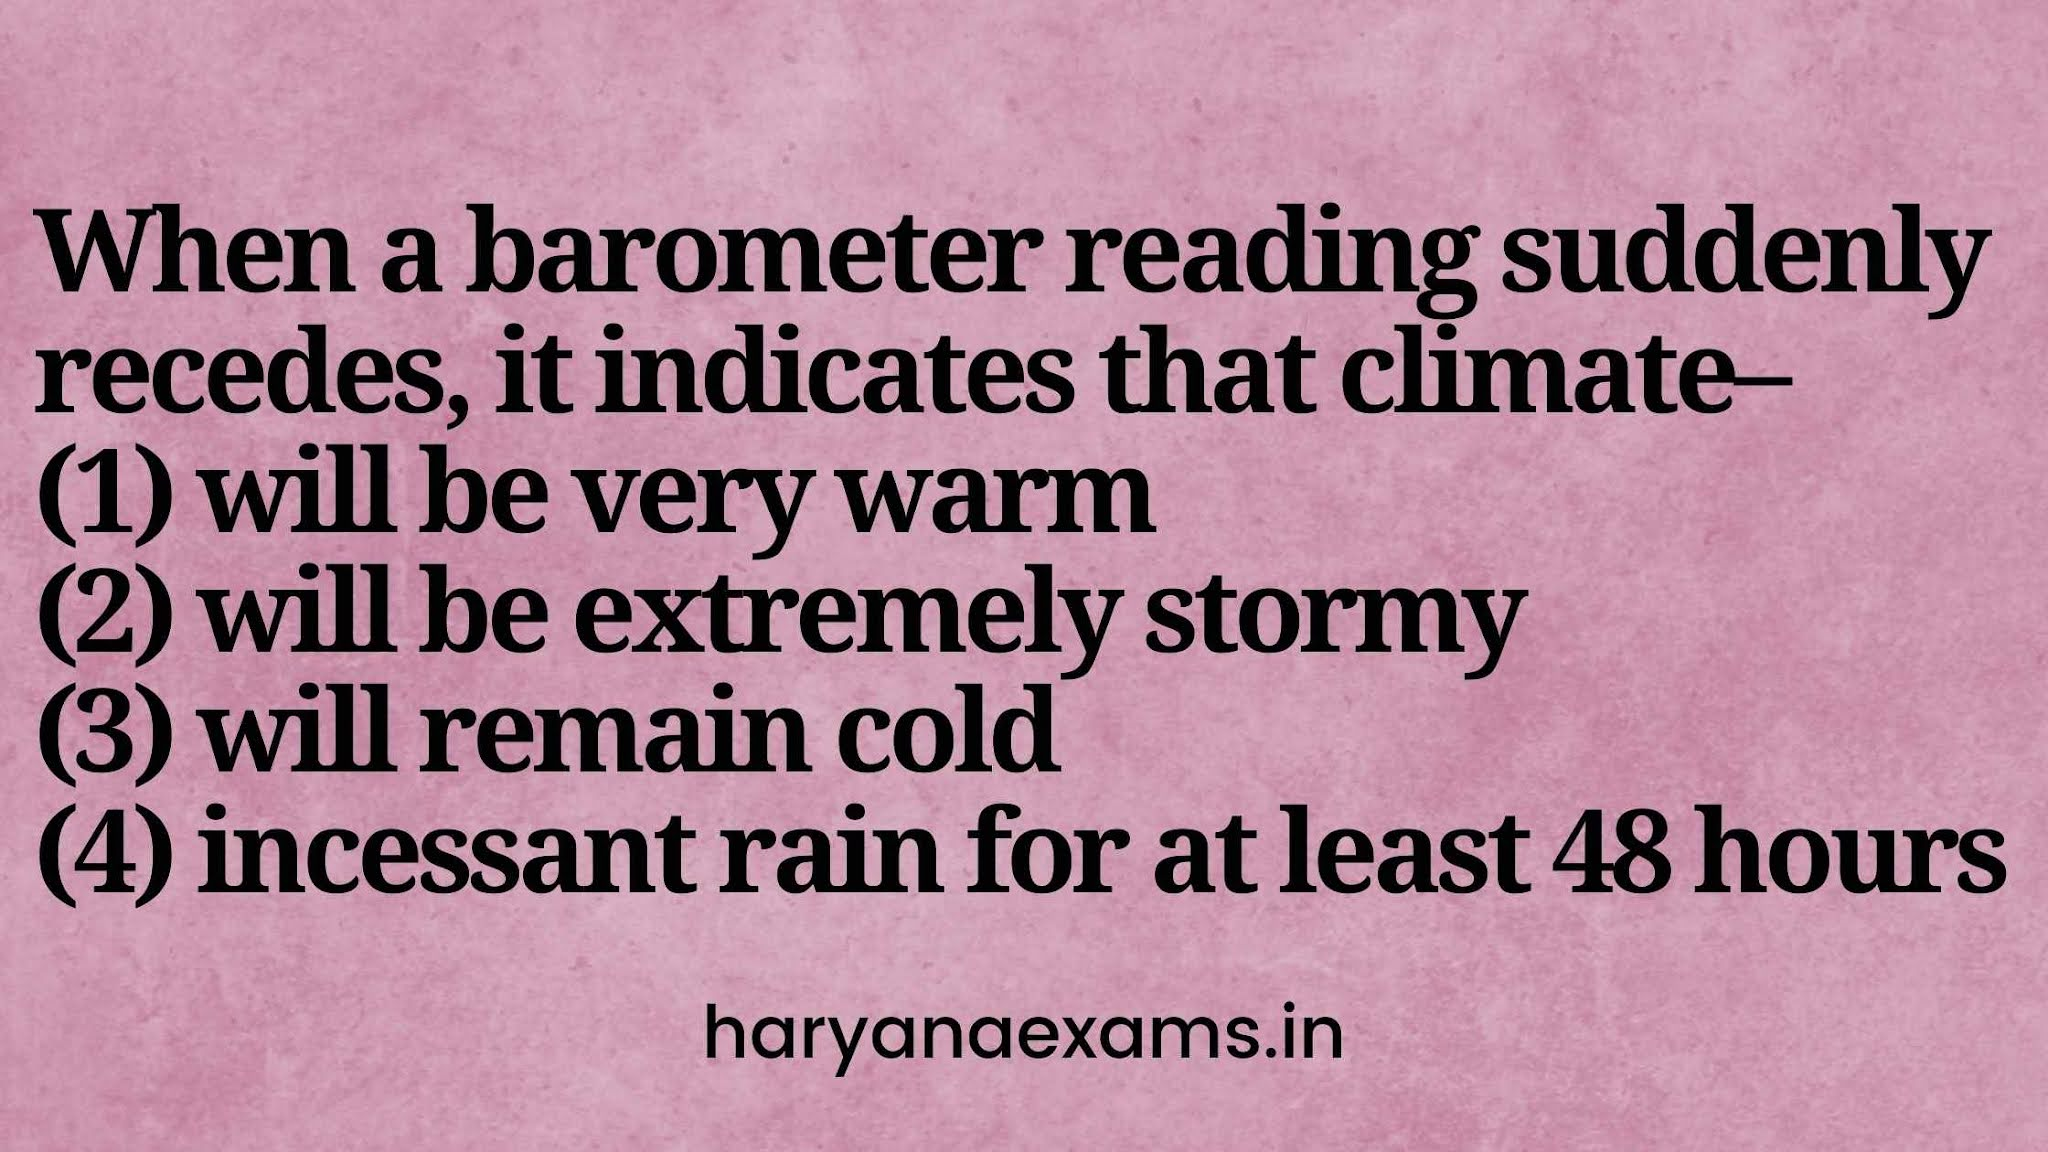 When a barometer reading suddenly recedes, it indicates that climate–   (1) will be very warm   (2) will be extremely stormy   (3) will remain cold   (4) incessant rain for at least 48 hours